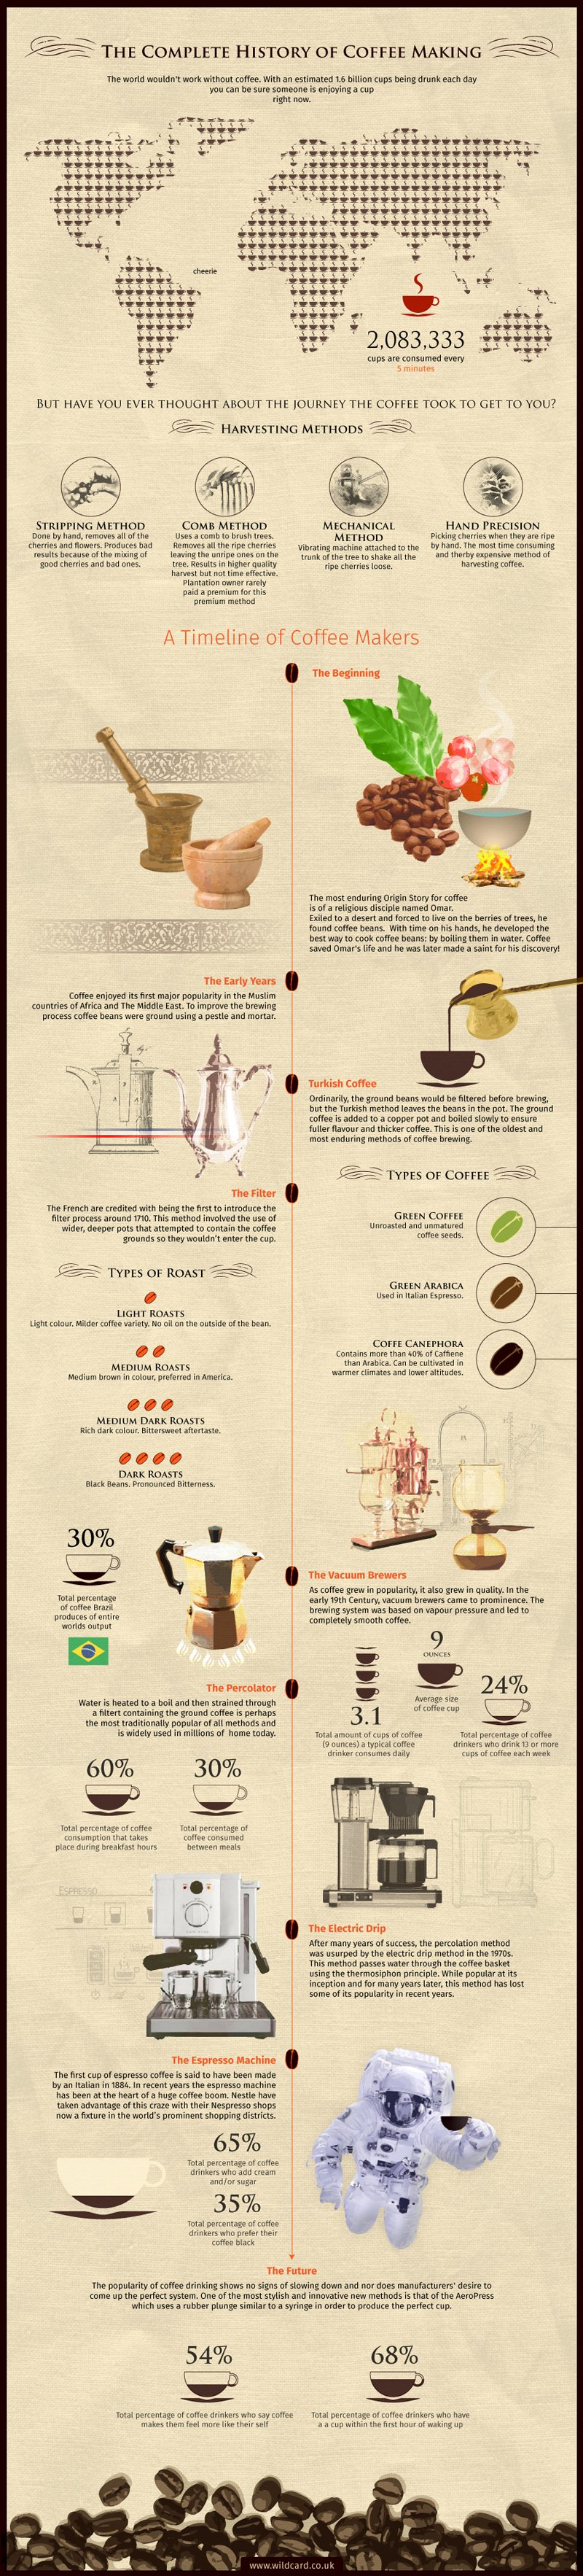 The complete history of coffee infographic